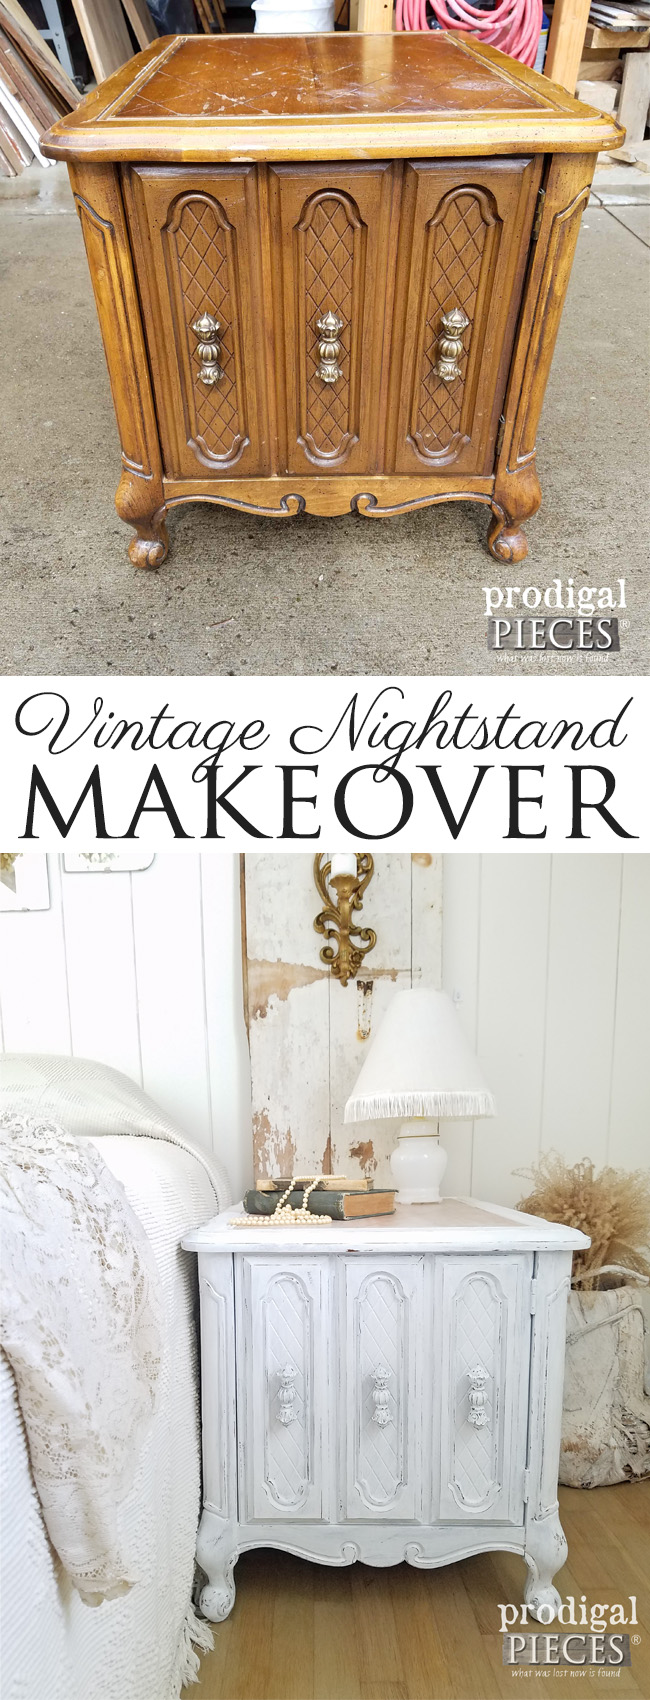 Teen girl gives this vintage nightstand a makeover like noneother. Find it at Prodigal Pieces | prodigalpieces.com